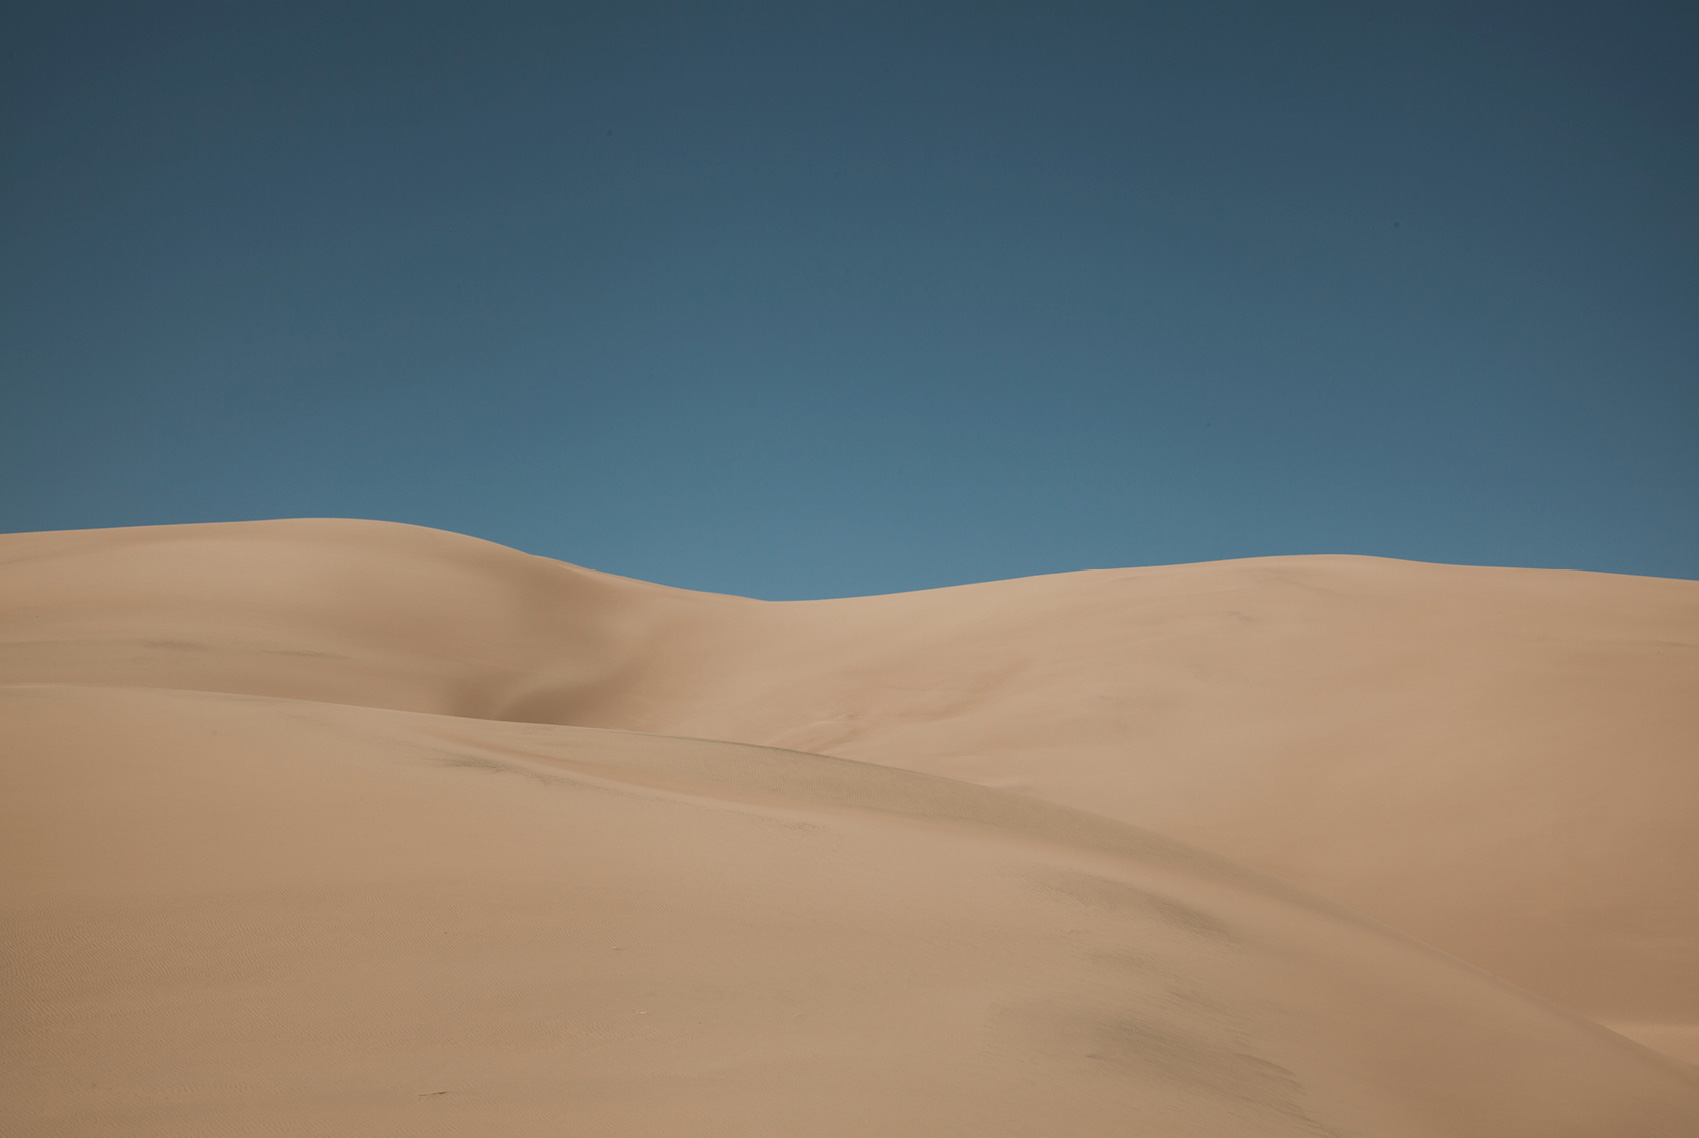 sam_kweskin_great_sand_dunes_colorado_8